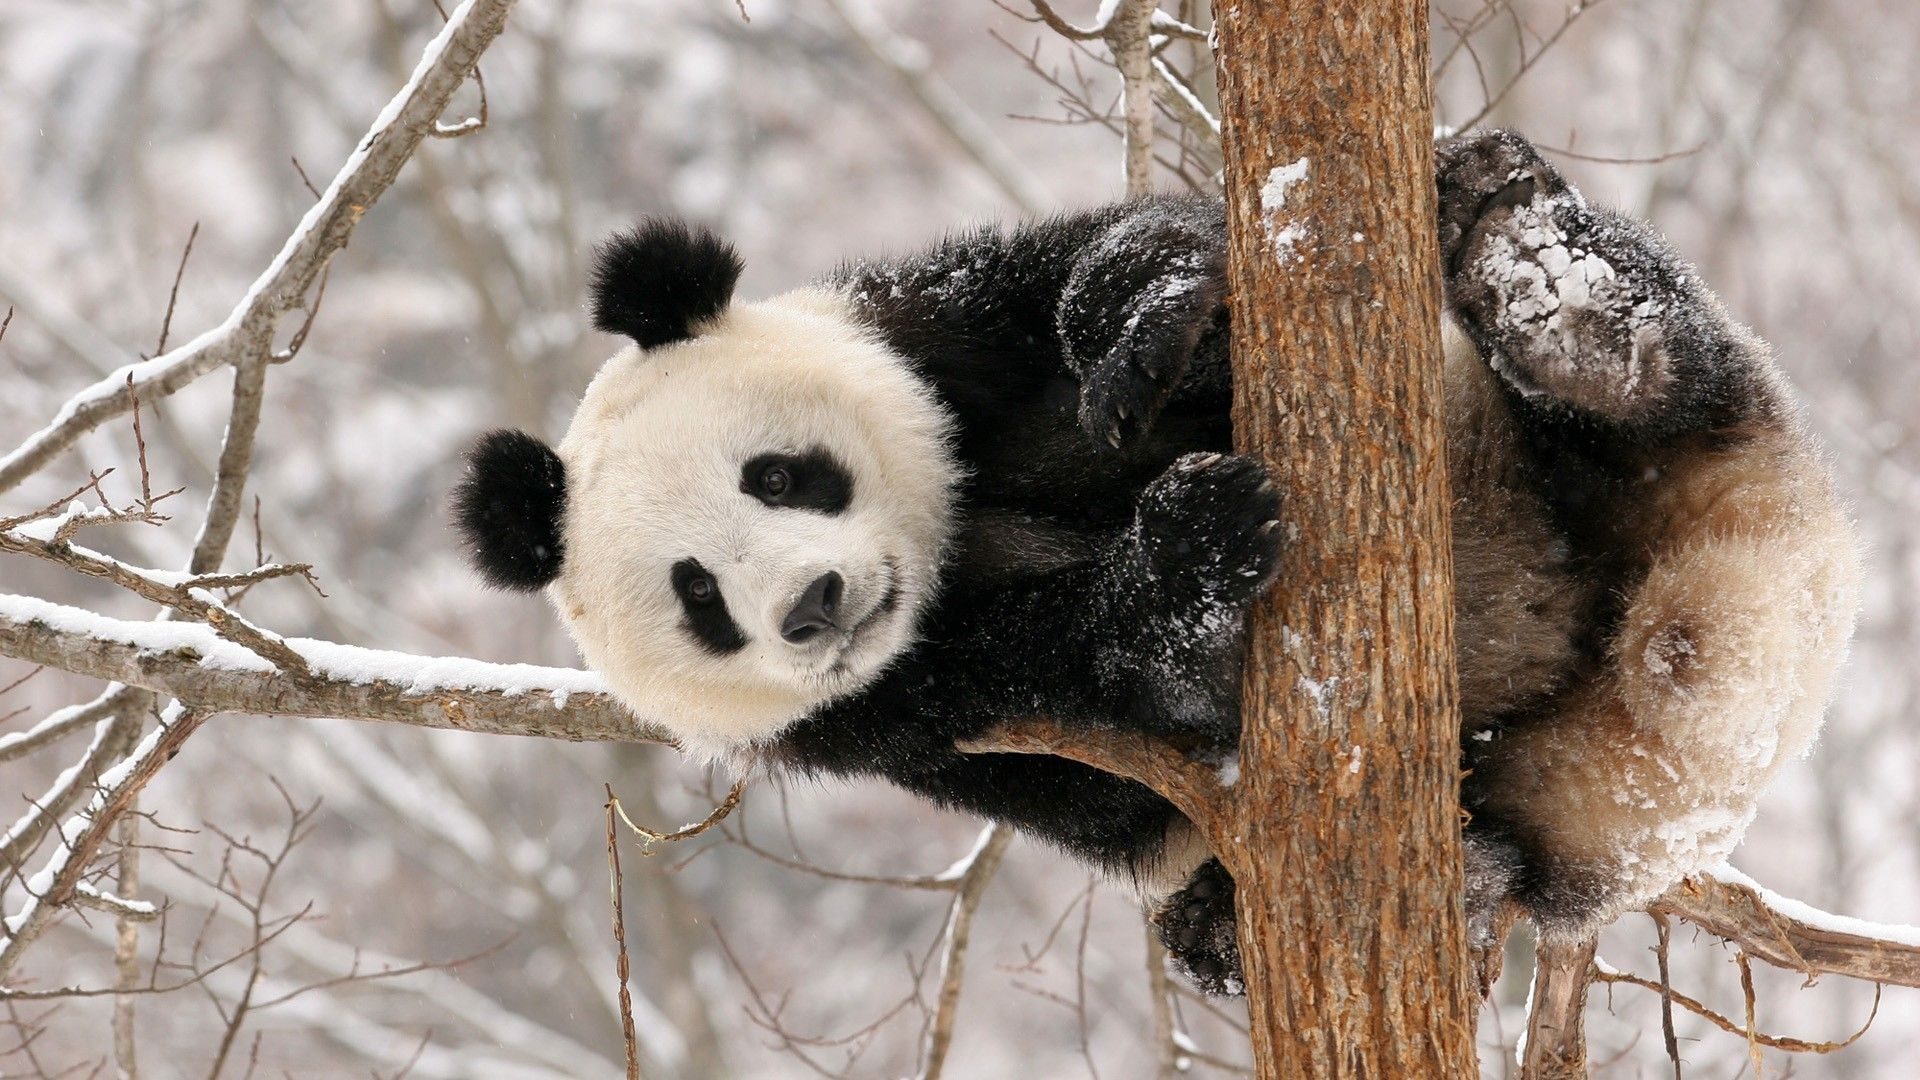 A Panda Climbs Up Tree After Snowfall In Hanzhong Shaanxi Province China